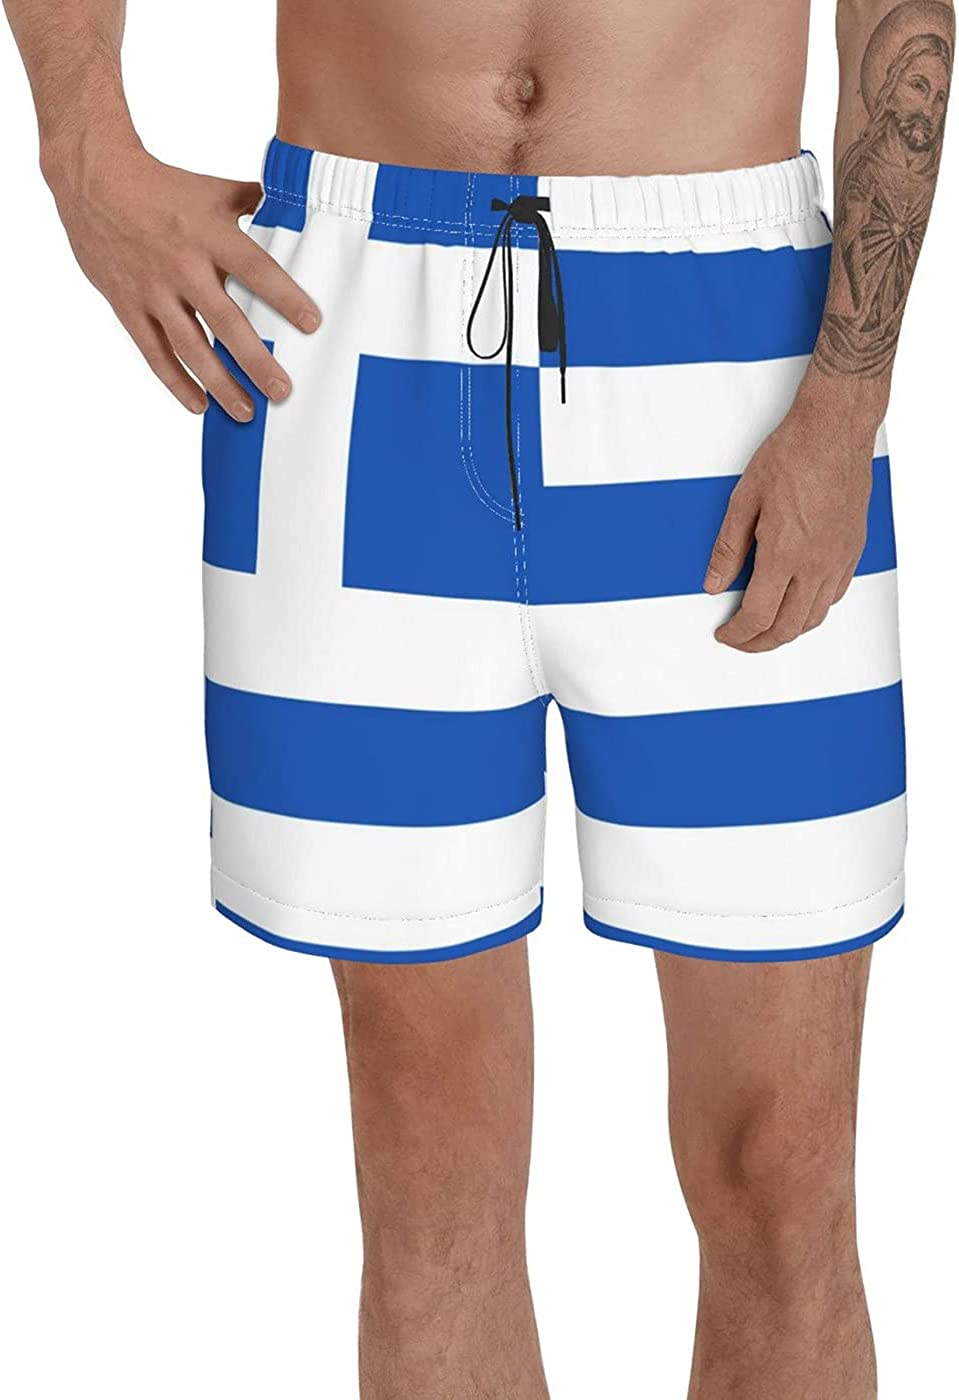 Count Greece Flag Men's 3D Printed Funny Summer Quick Dry Swim Short Board Shorts with